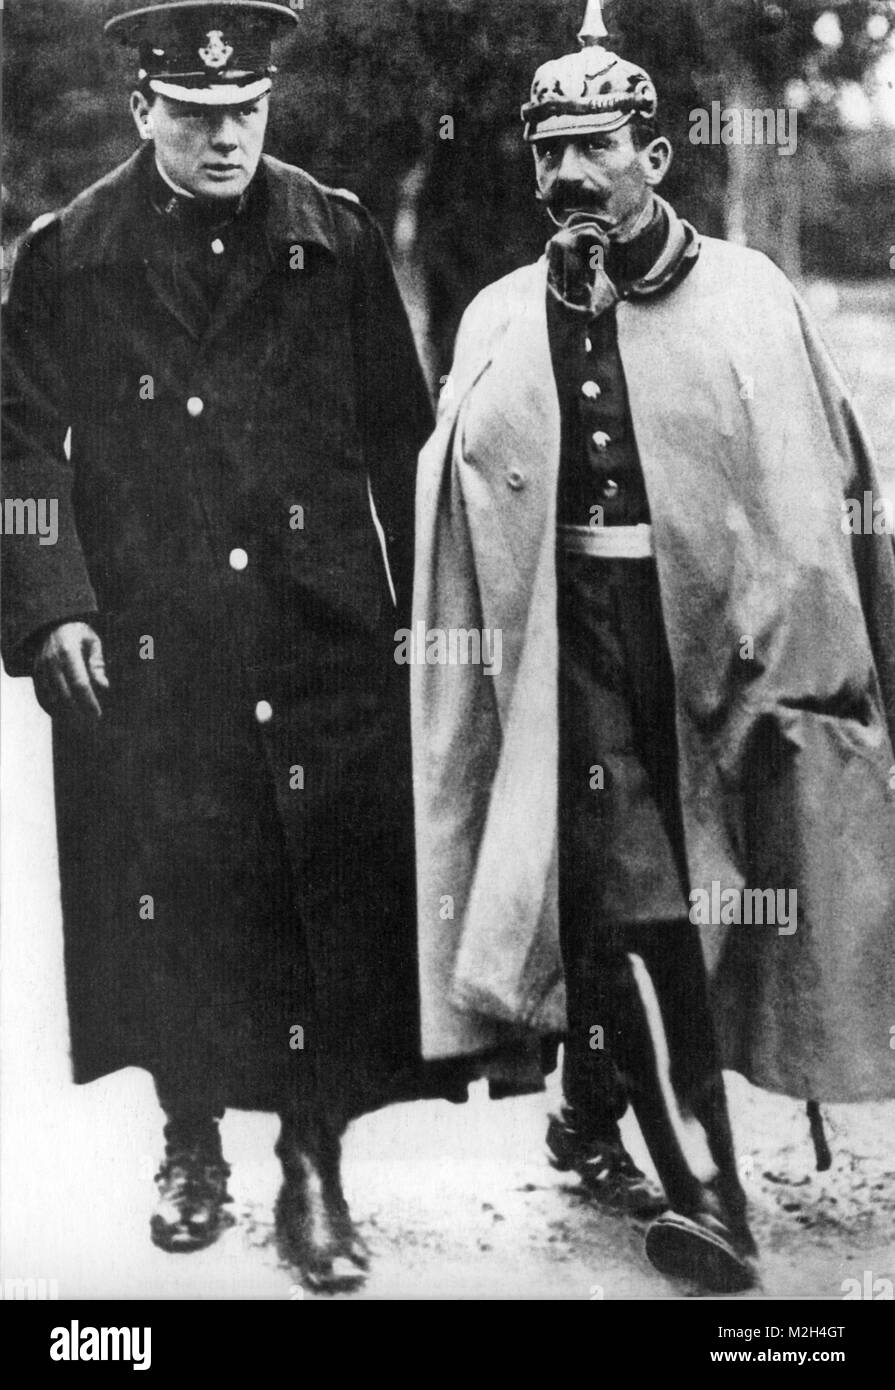 WINSTON CHURCHILL at left with Wilhelm II at the German Army manoeuvres in 1909 - Stock Image